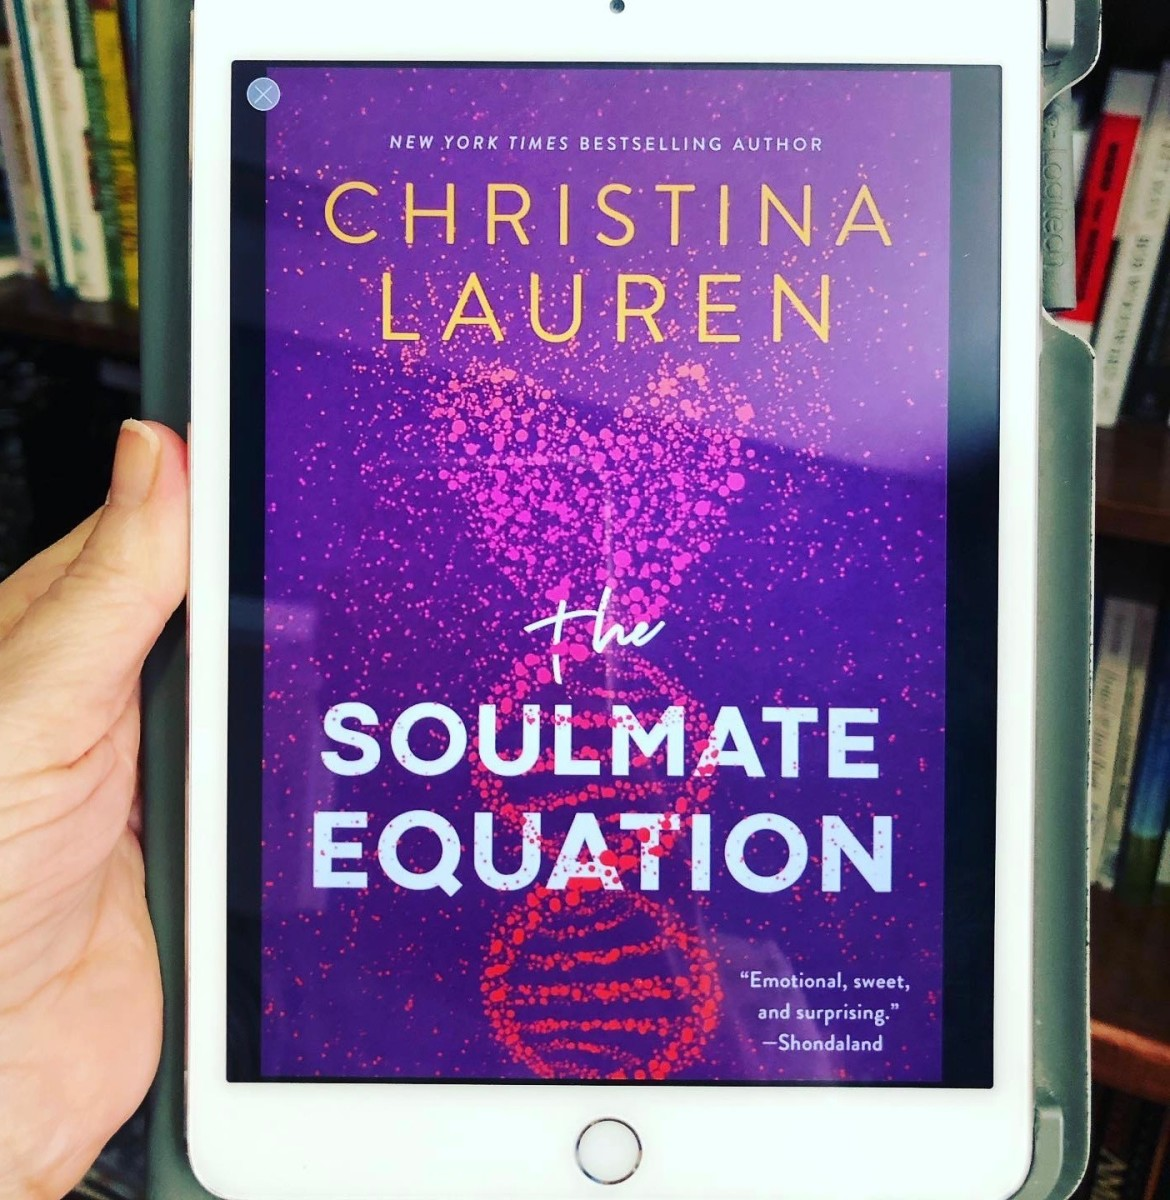 The Soulmate Equation, by Christina Lauren